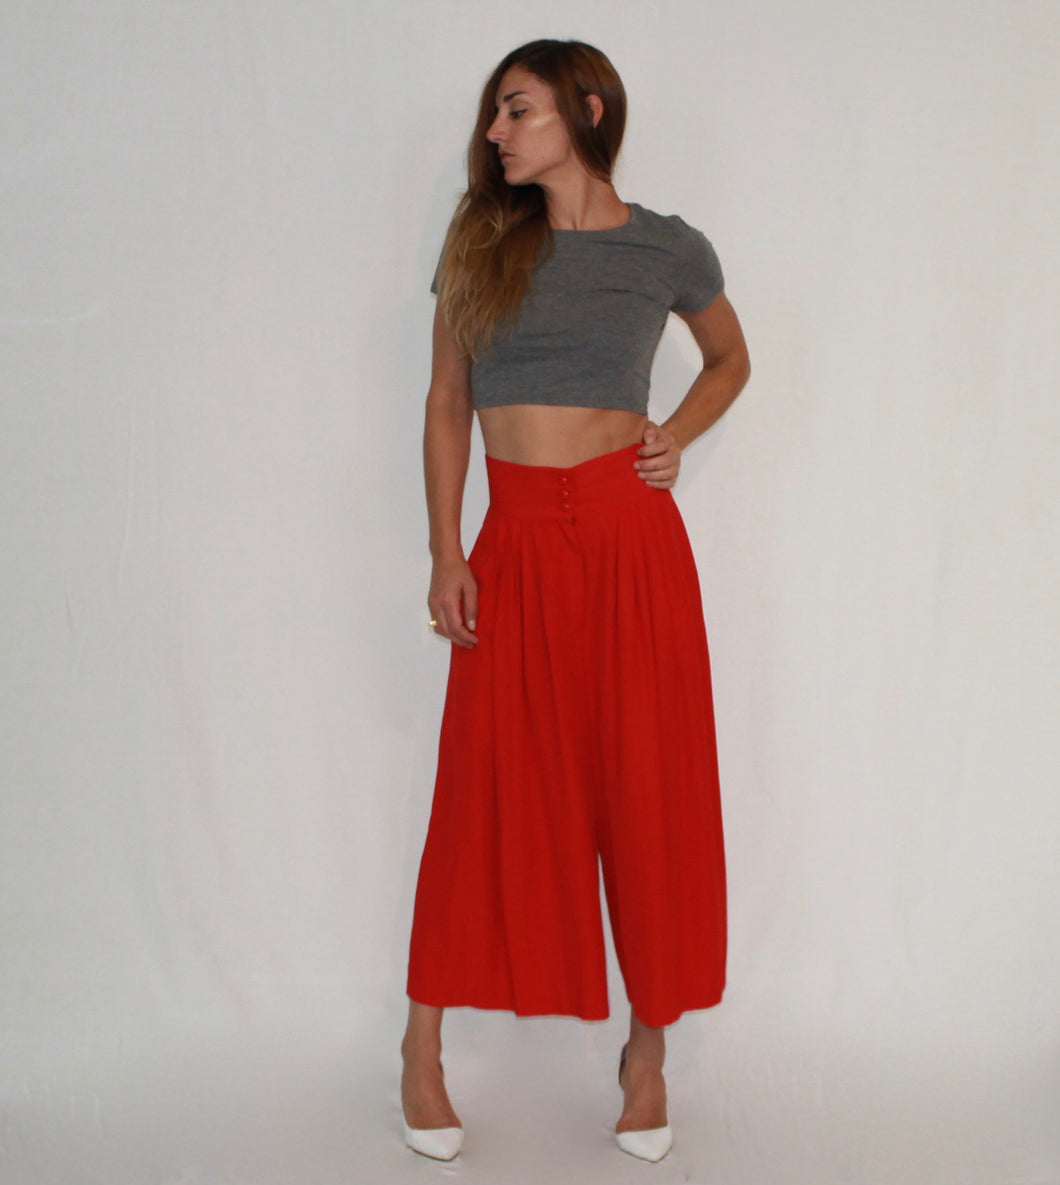 ALANA 3-BUTTON GAUCHOS - The Funding Ninjas